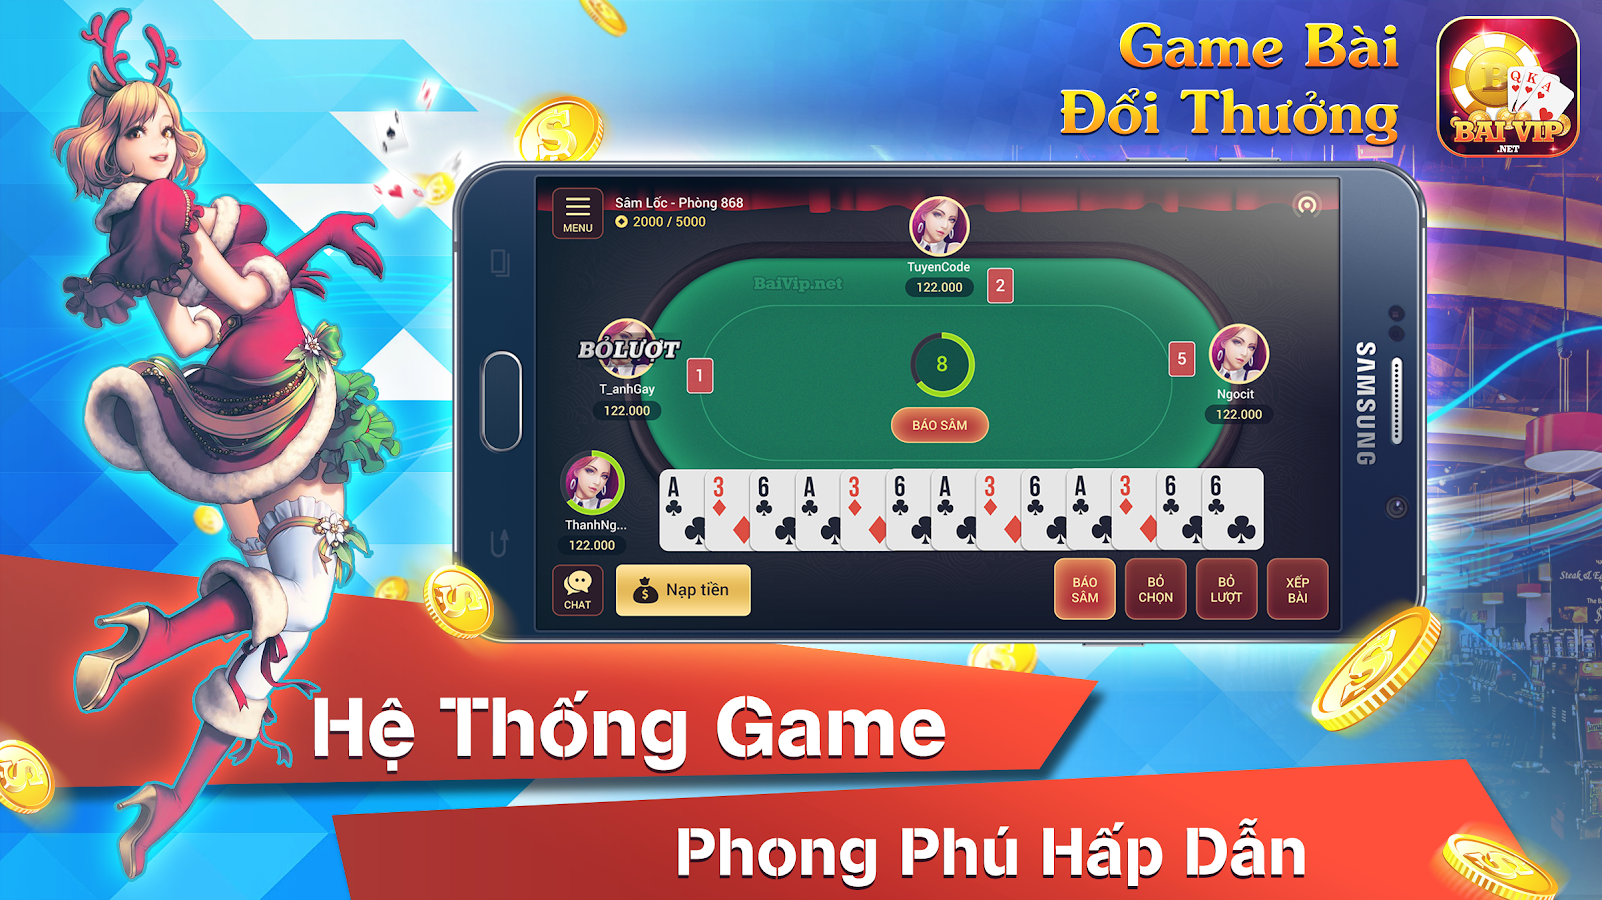 BaiVip - Game danh bai online Screenshot 6